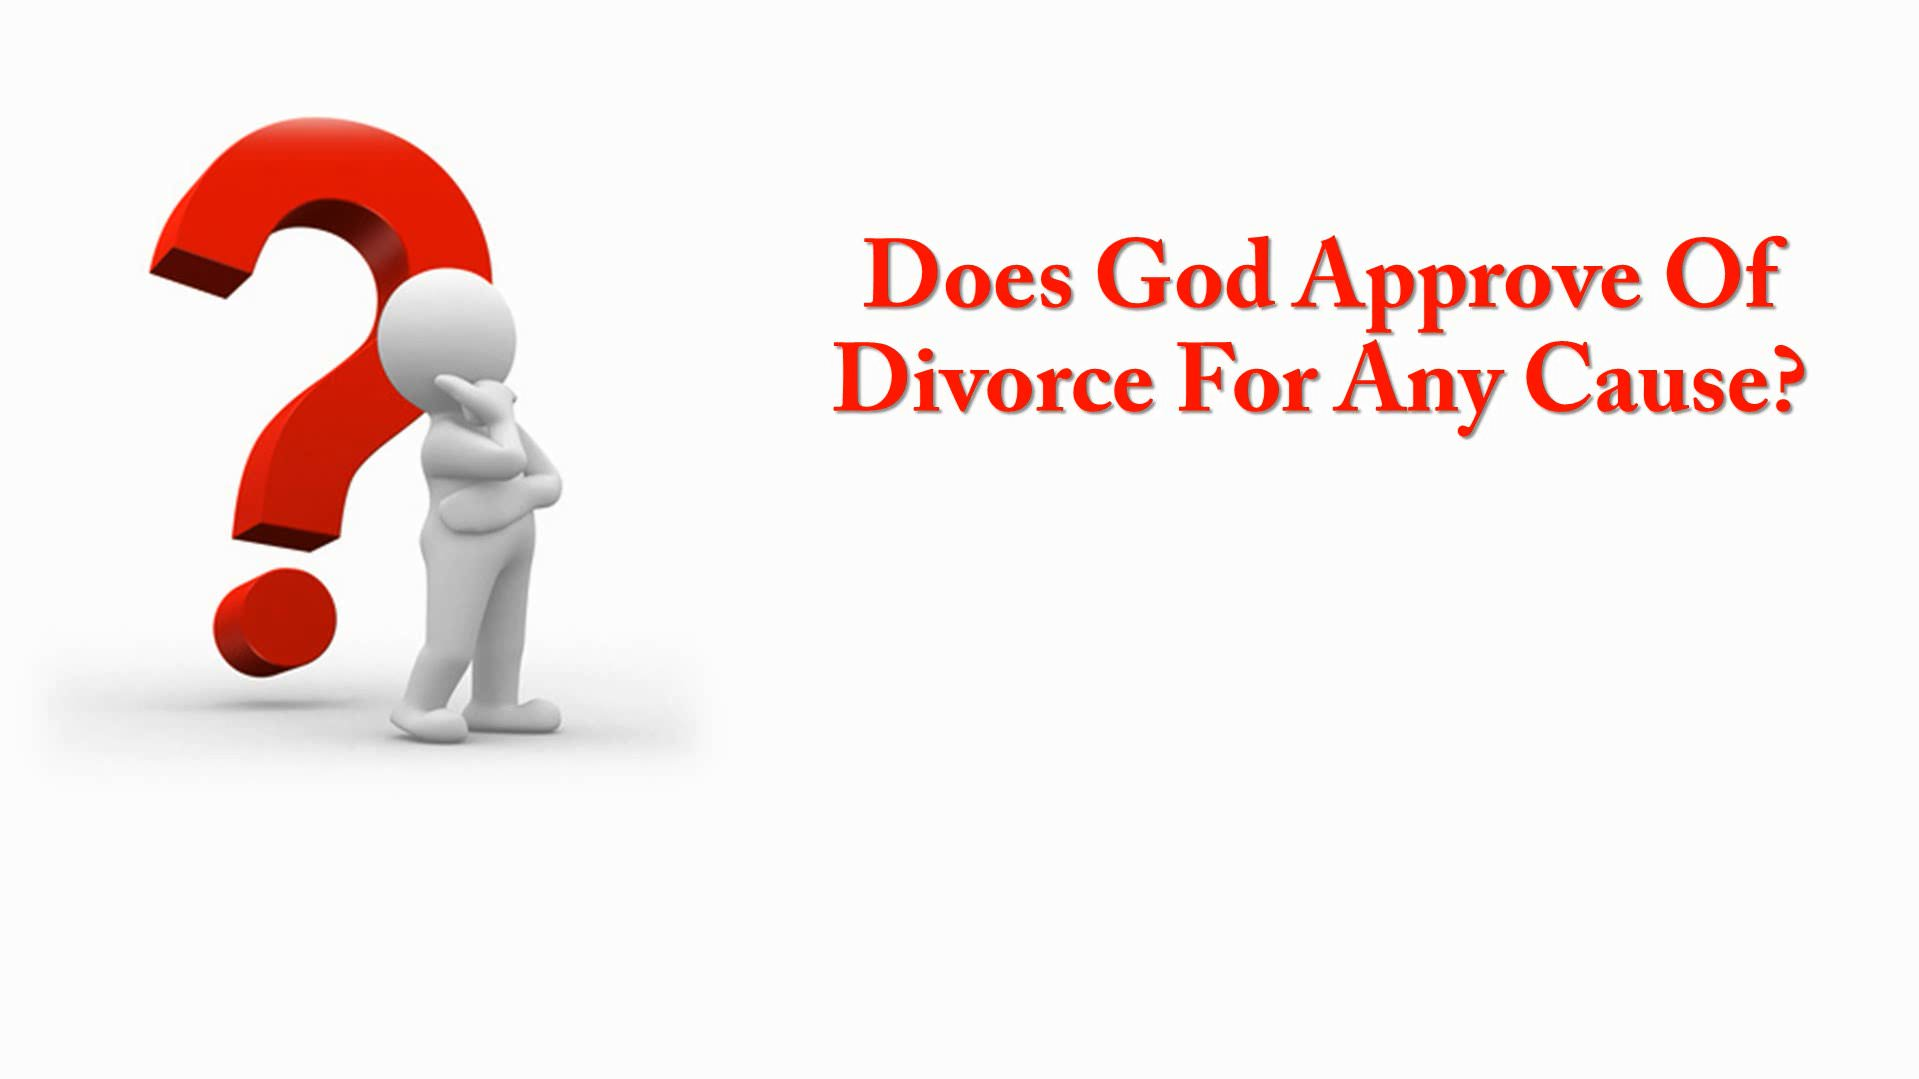 Does God Approve Of Divorce For Any Cause?